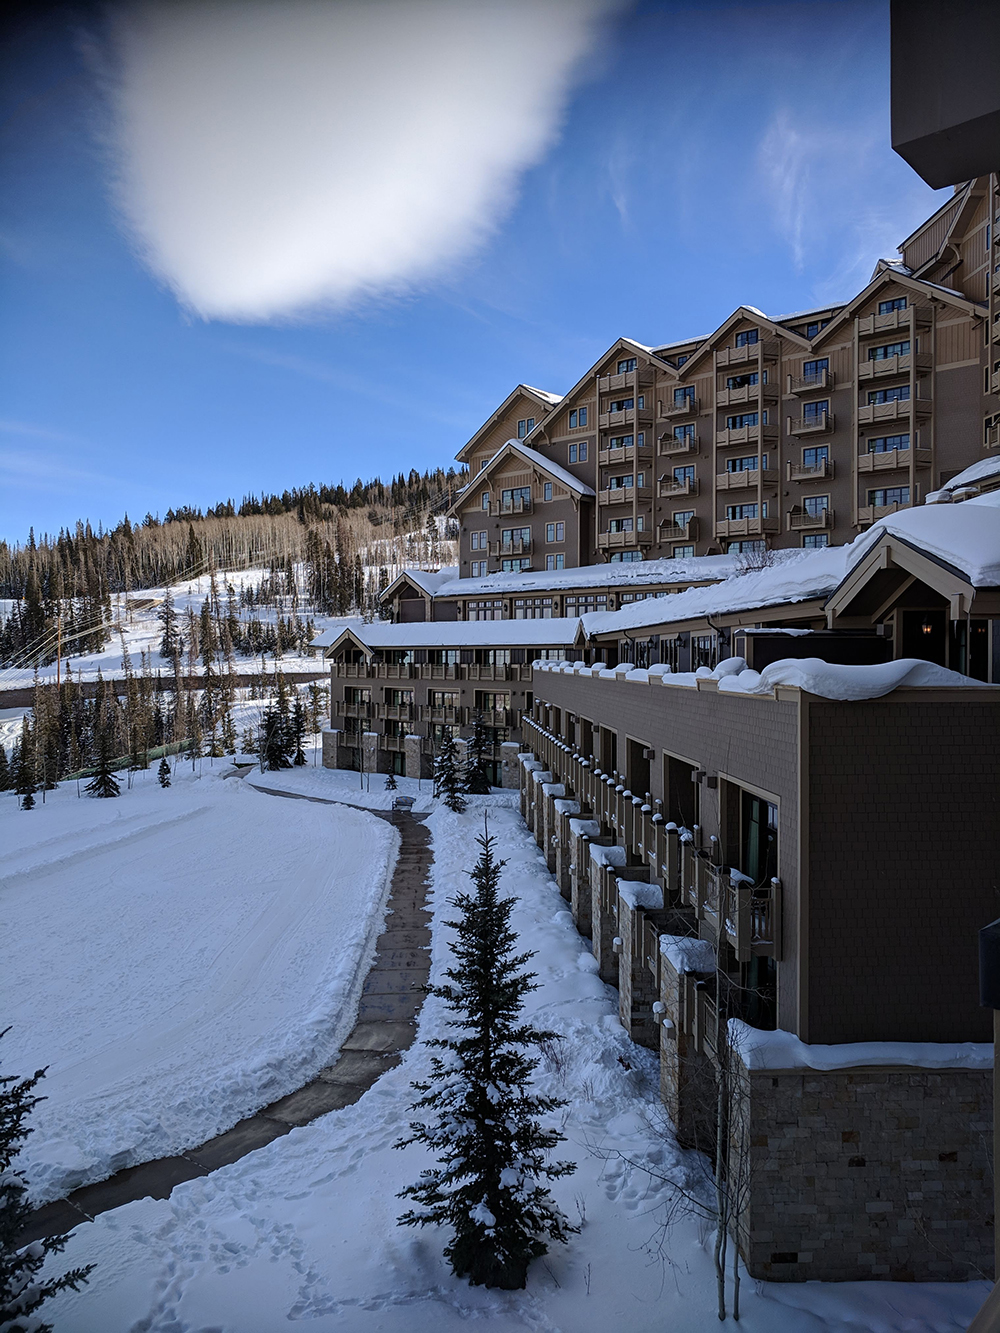 A lovely view of Deer Valley Montage from the treatment room balcony.